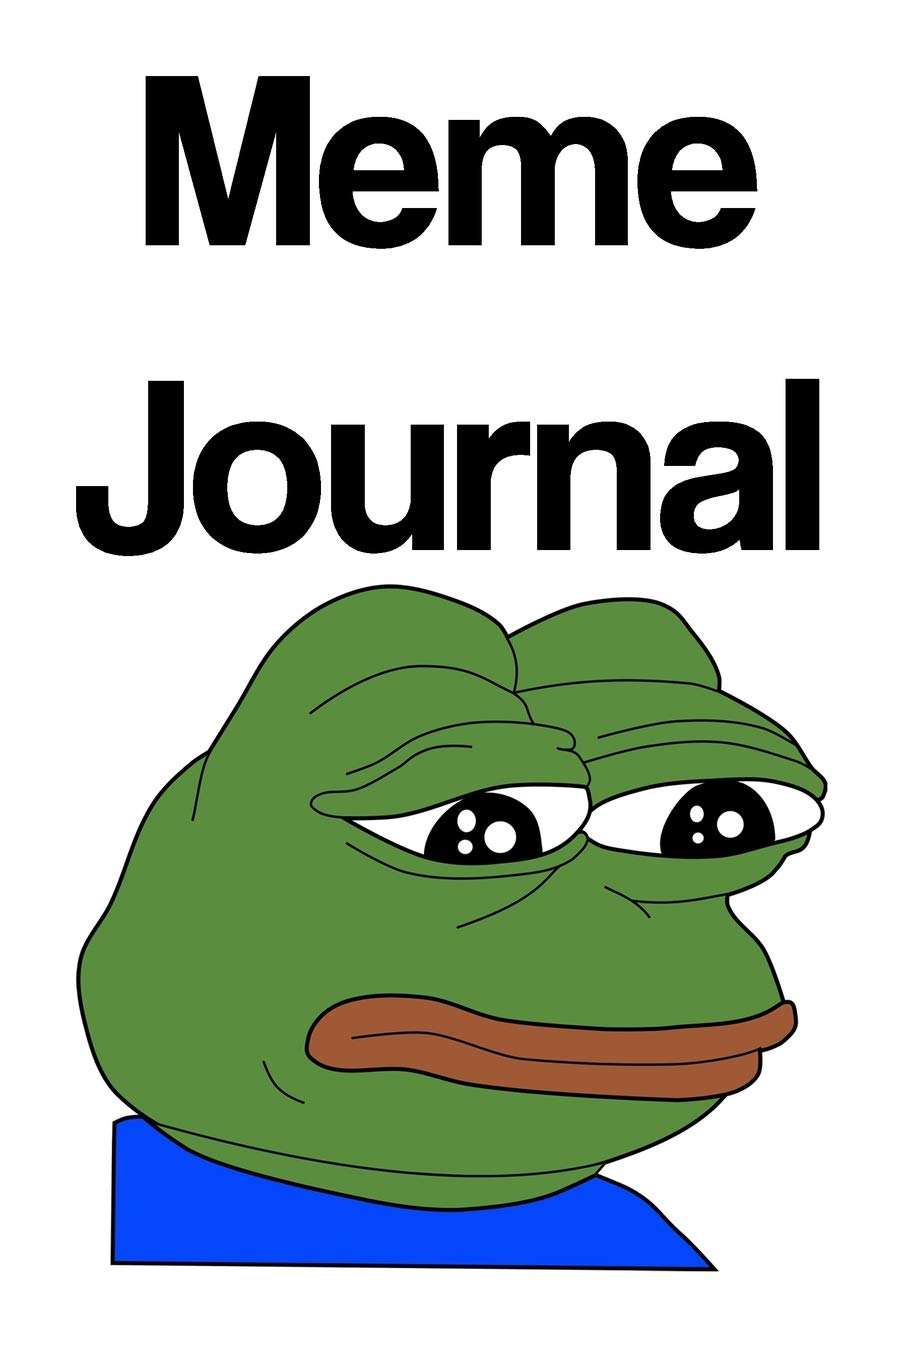 Meme Journal: PepeHands, Emote, Internet Pop Culture, Frogs ...